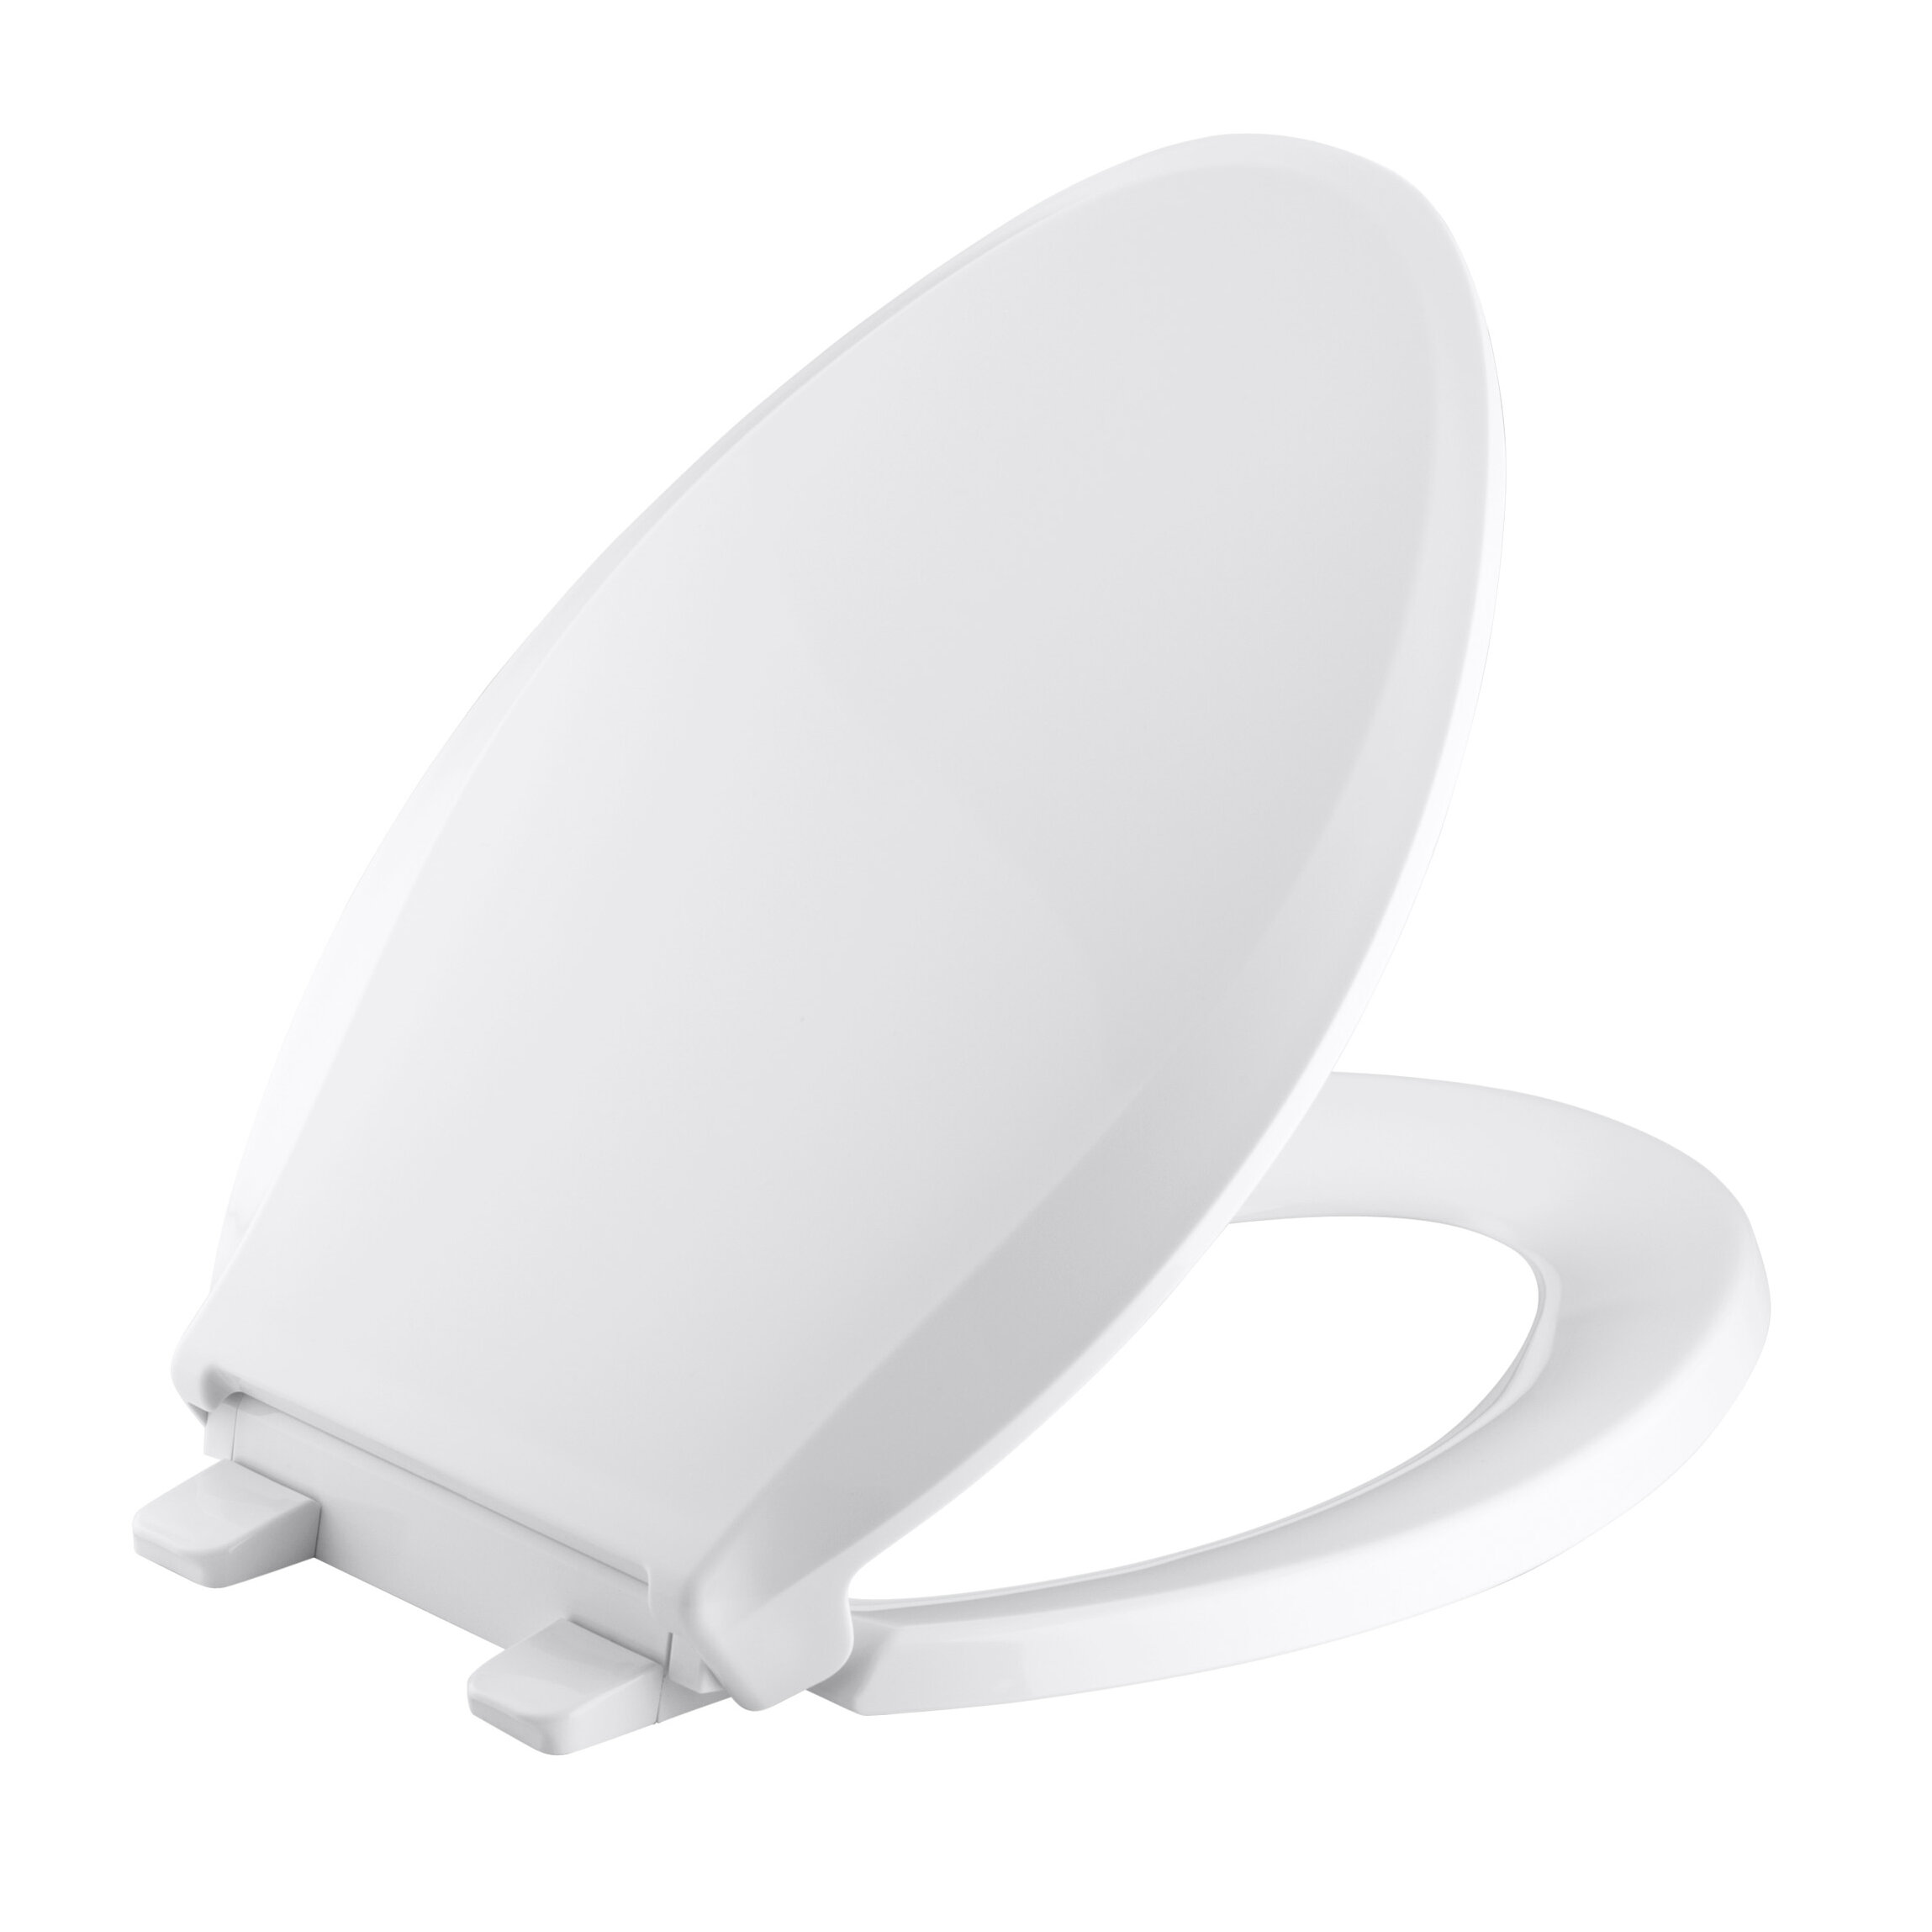 Remarkable Cachet Quiet Close With Quick Attach Hinges And Grip Tight Elongated Toilet Seat Pdpeps Interior Chair Design Pdpepsorg